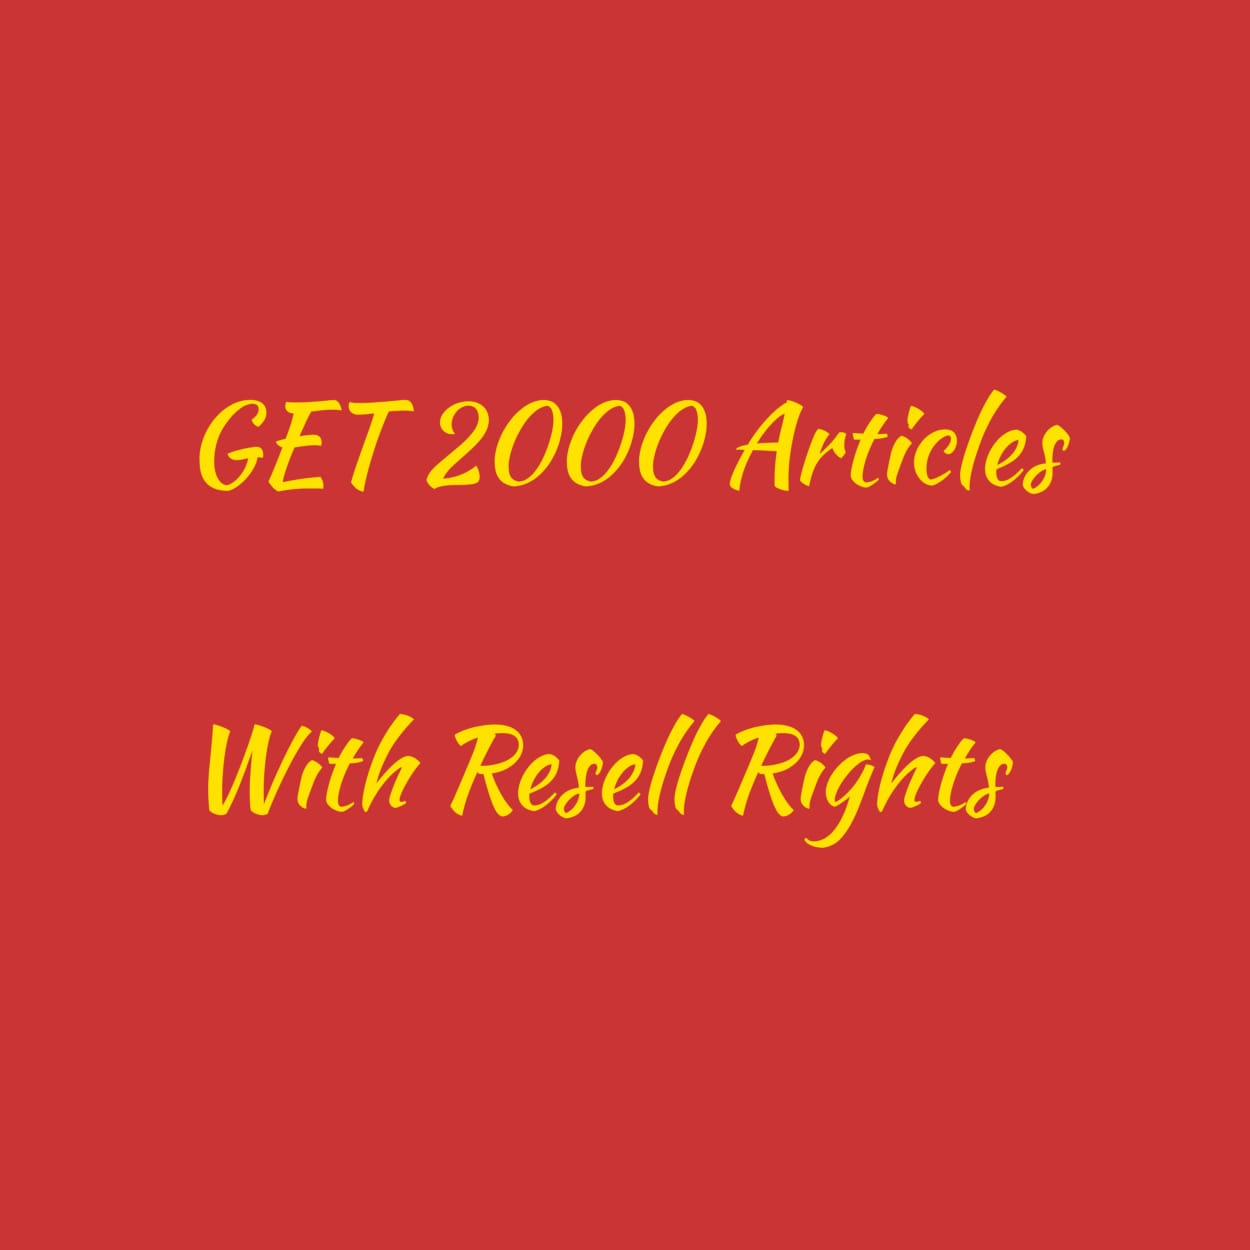 GET 2000 New Articles With Resell Rights